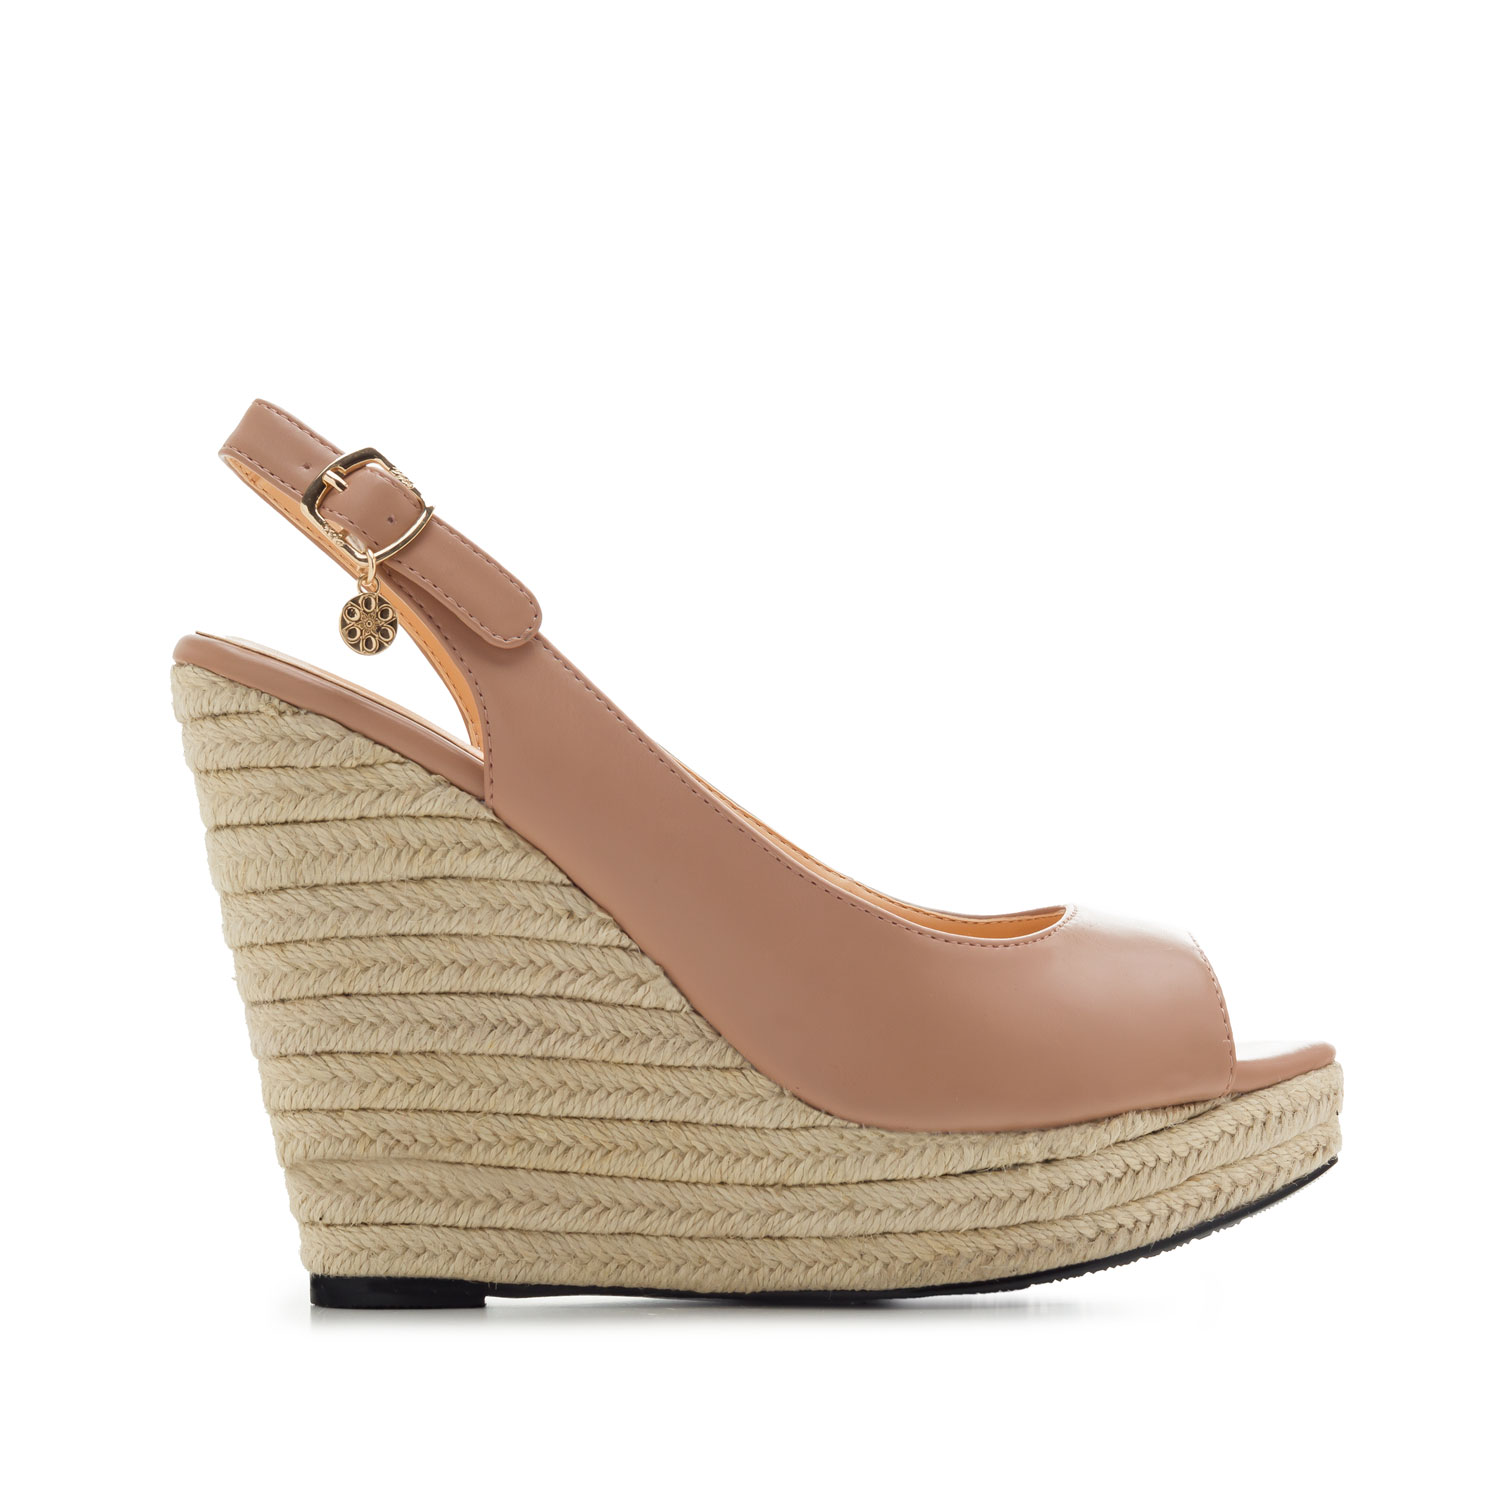 Jute Wedges in Salmon faux Leather